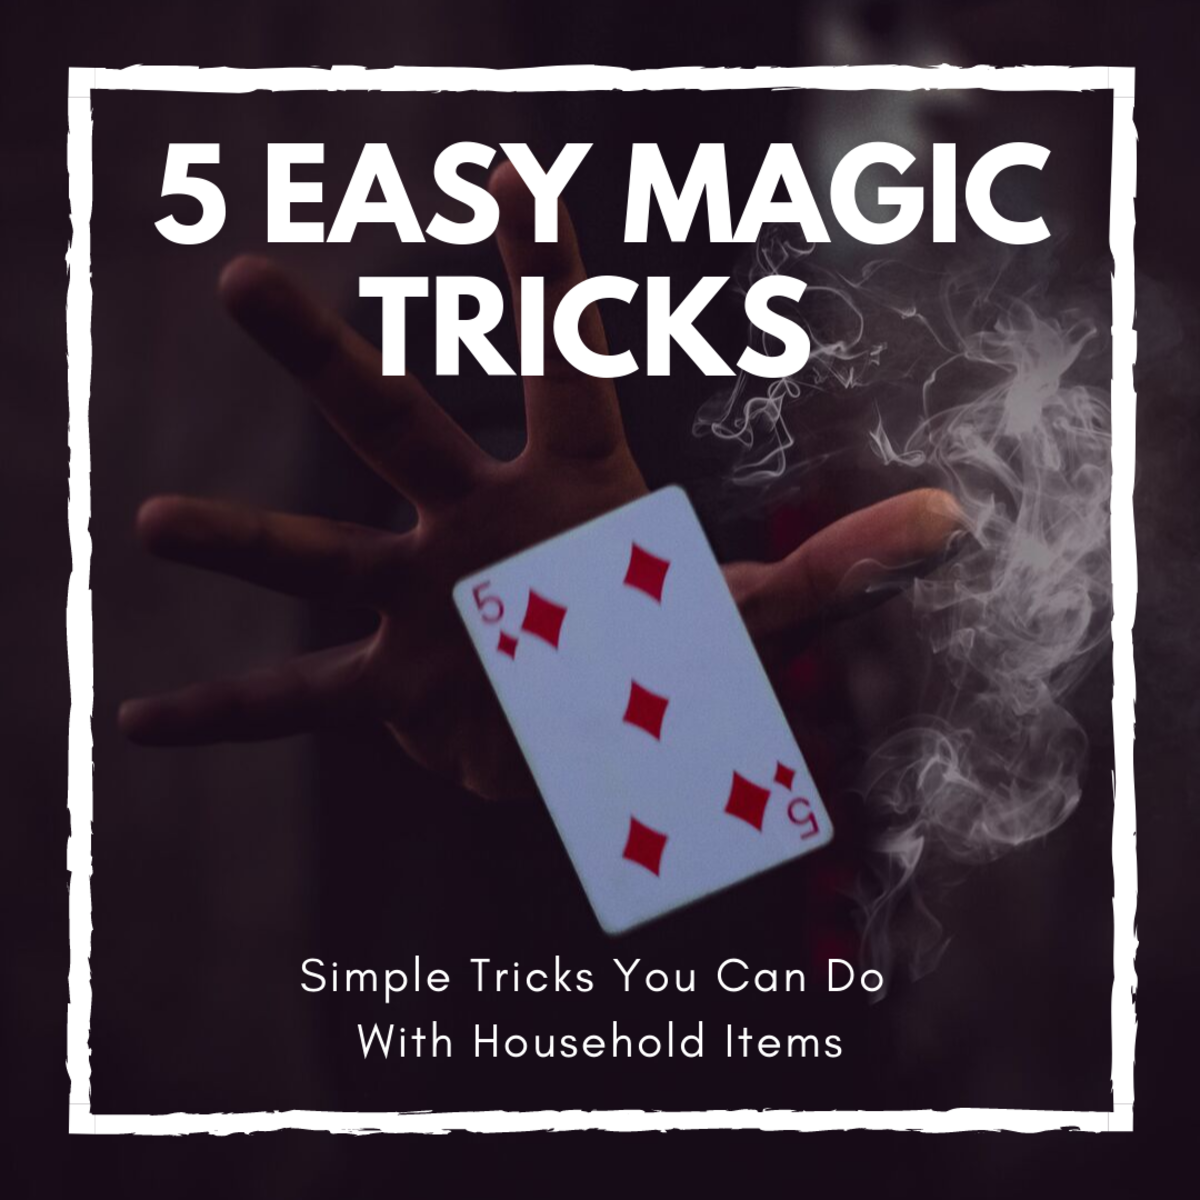 Good Magic Tricks With Household Items